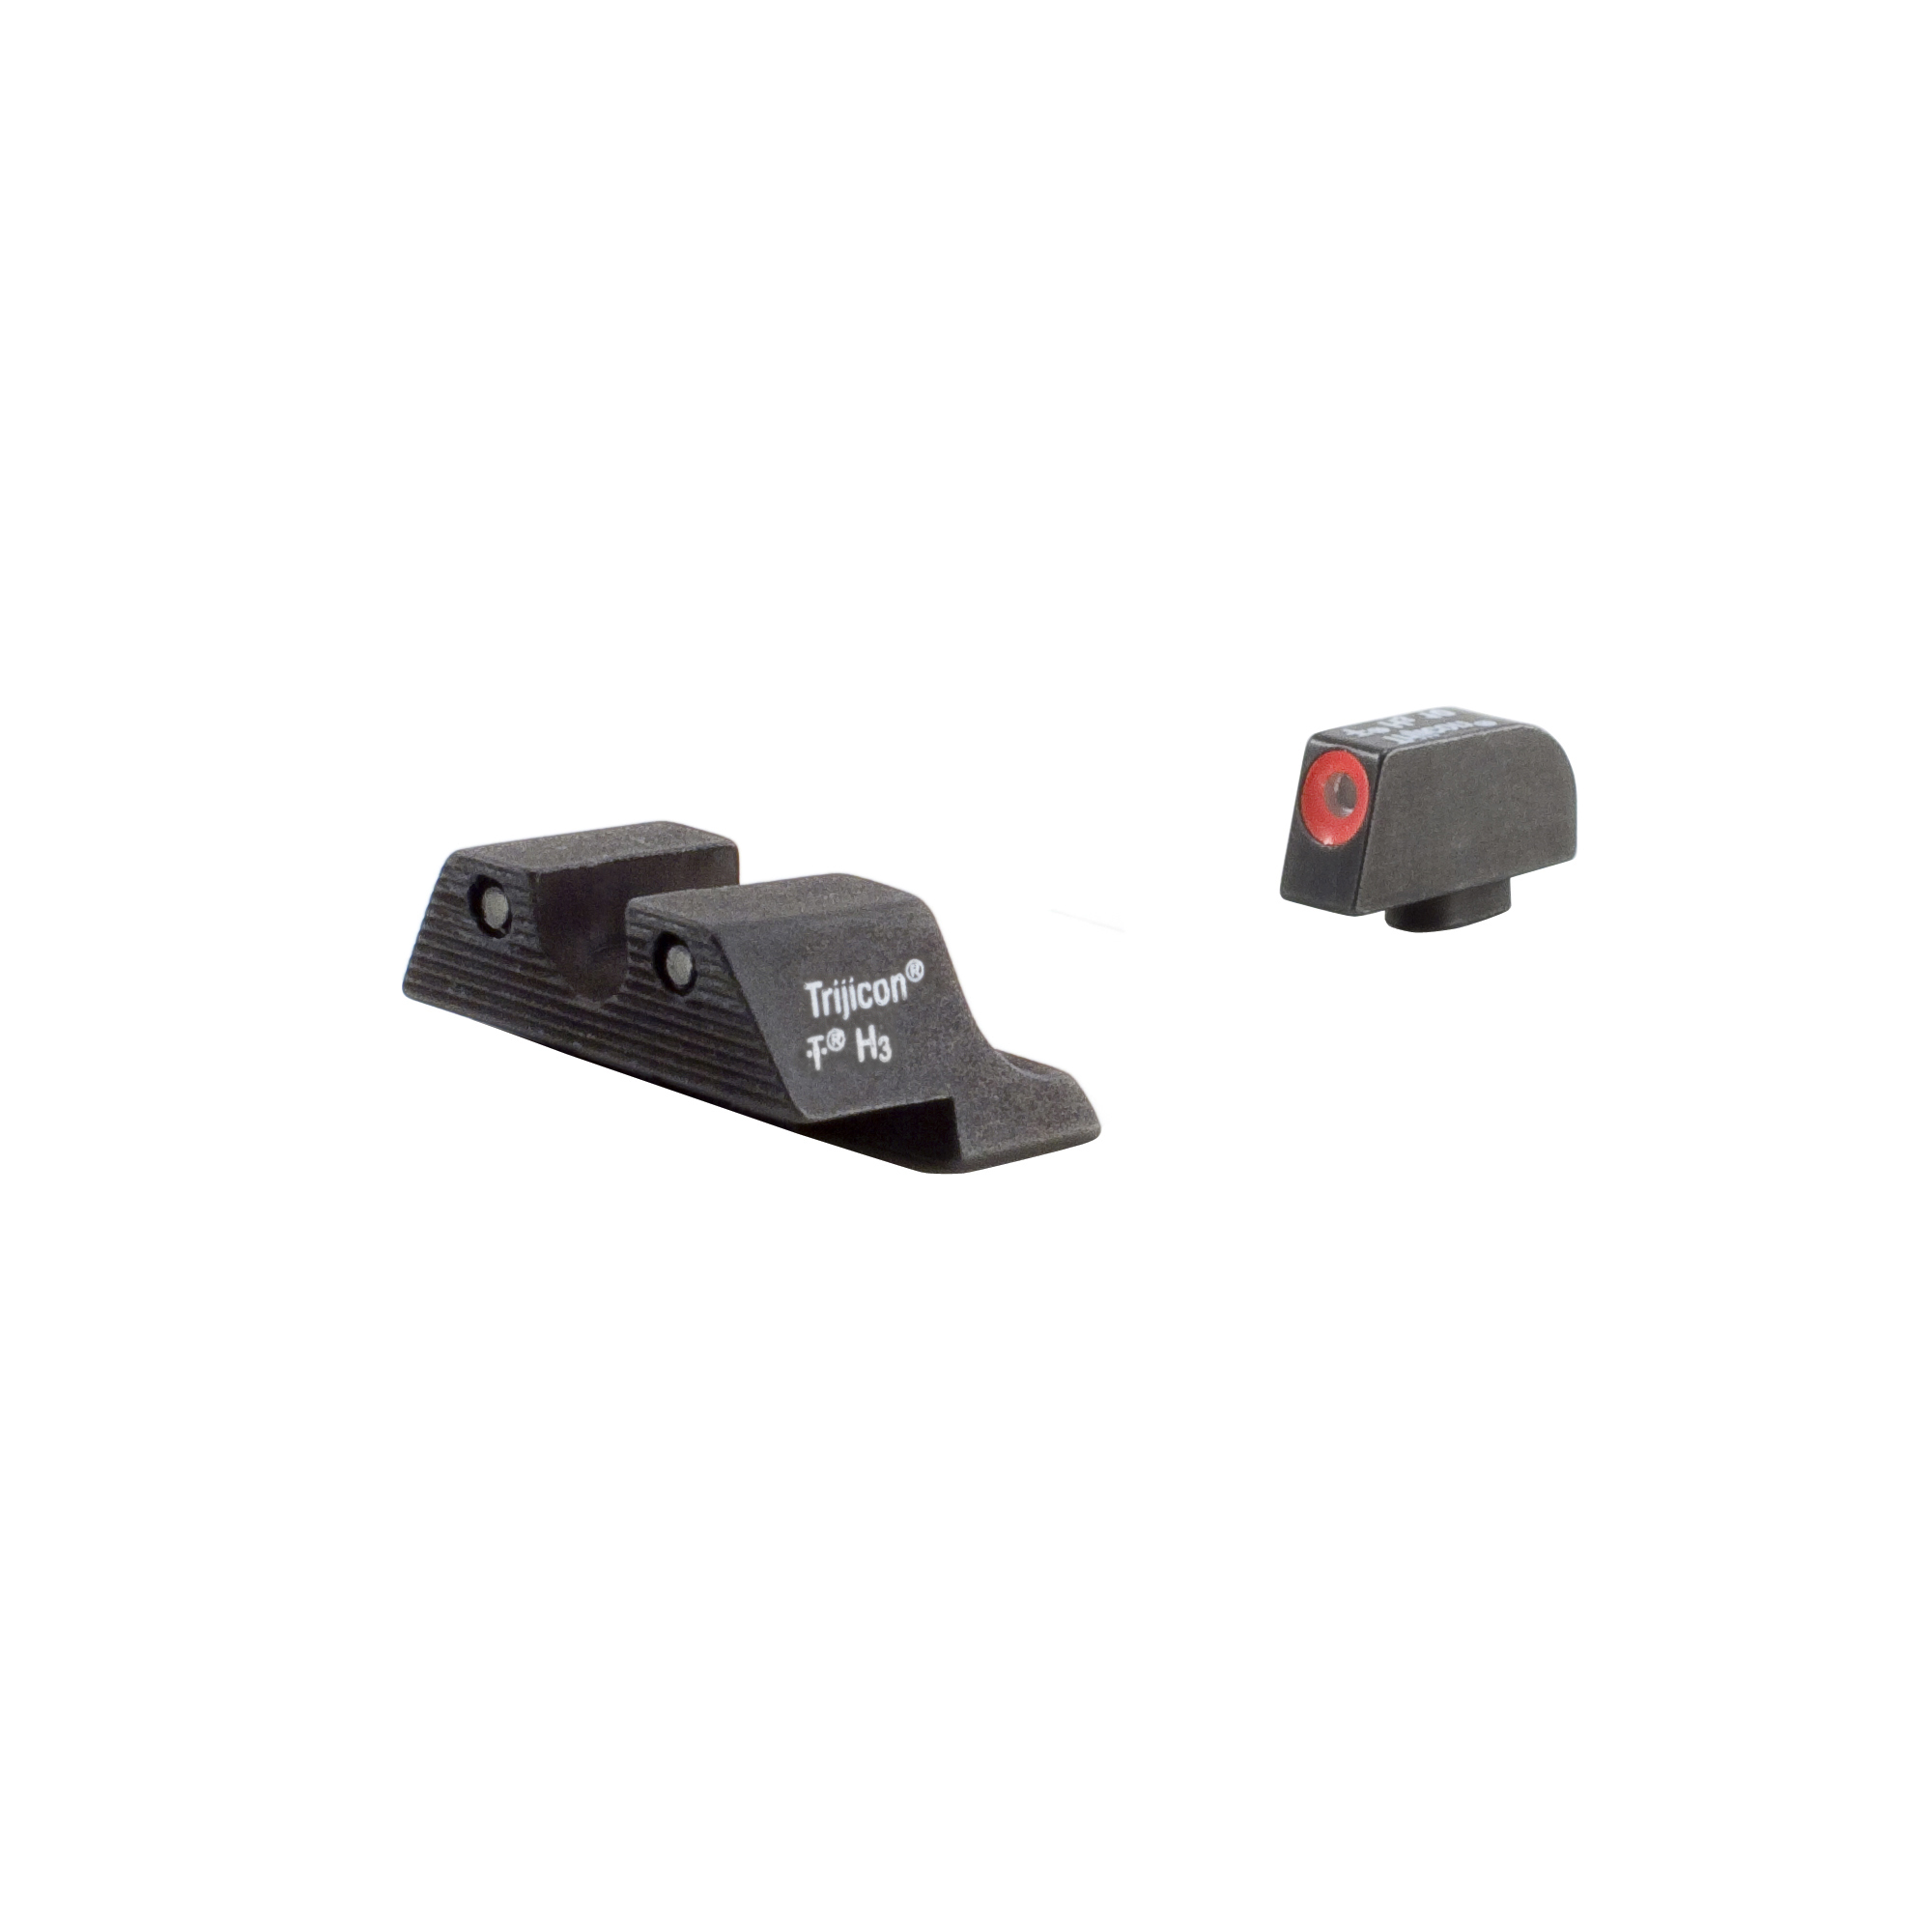 Trijicon Glock HD Night Sight Set 20 21 29 30 36 40 41, S and SF Variants, Orange Front Outline Lamp by Trijicon